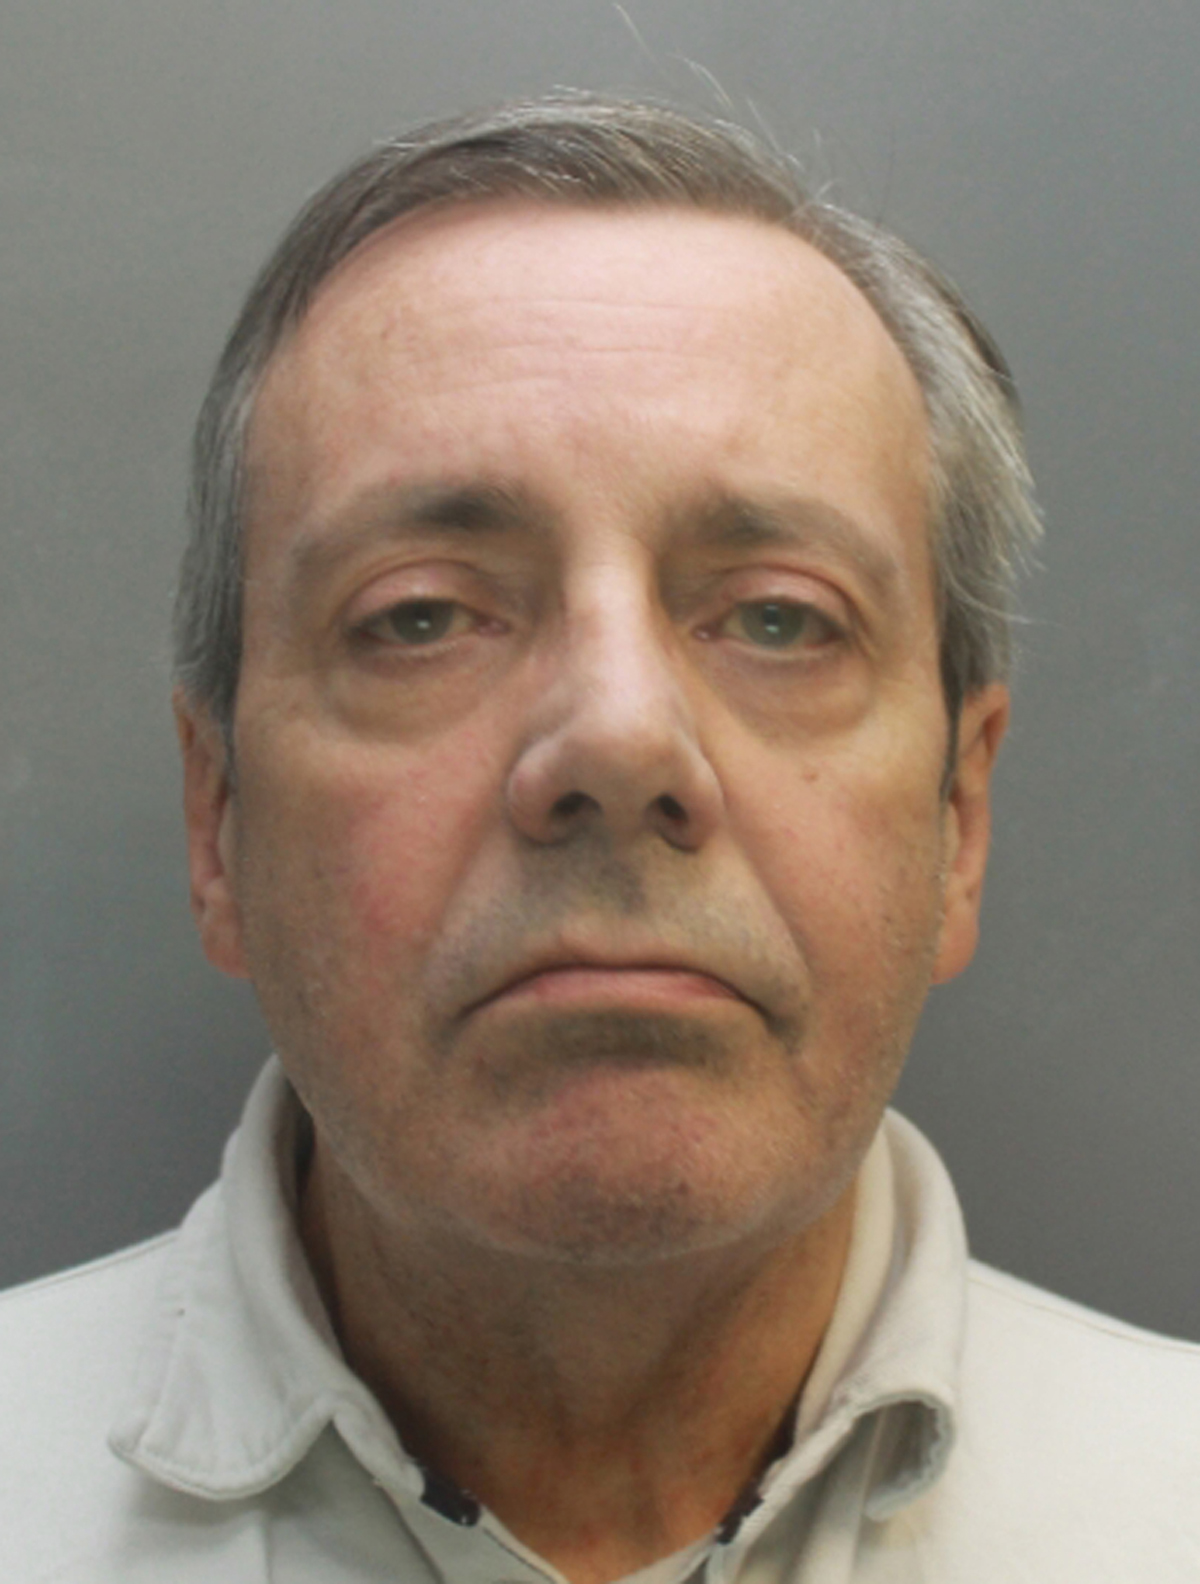 JAILED: Simon Crowther